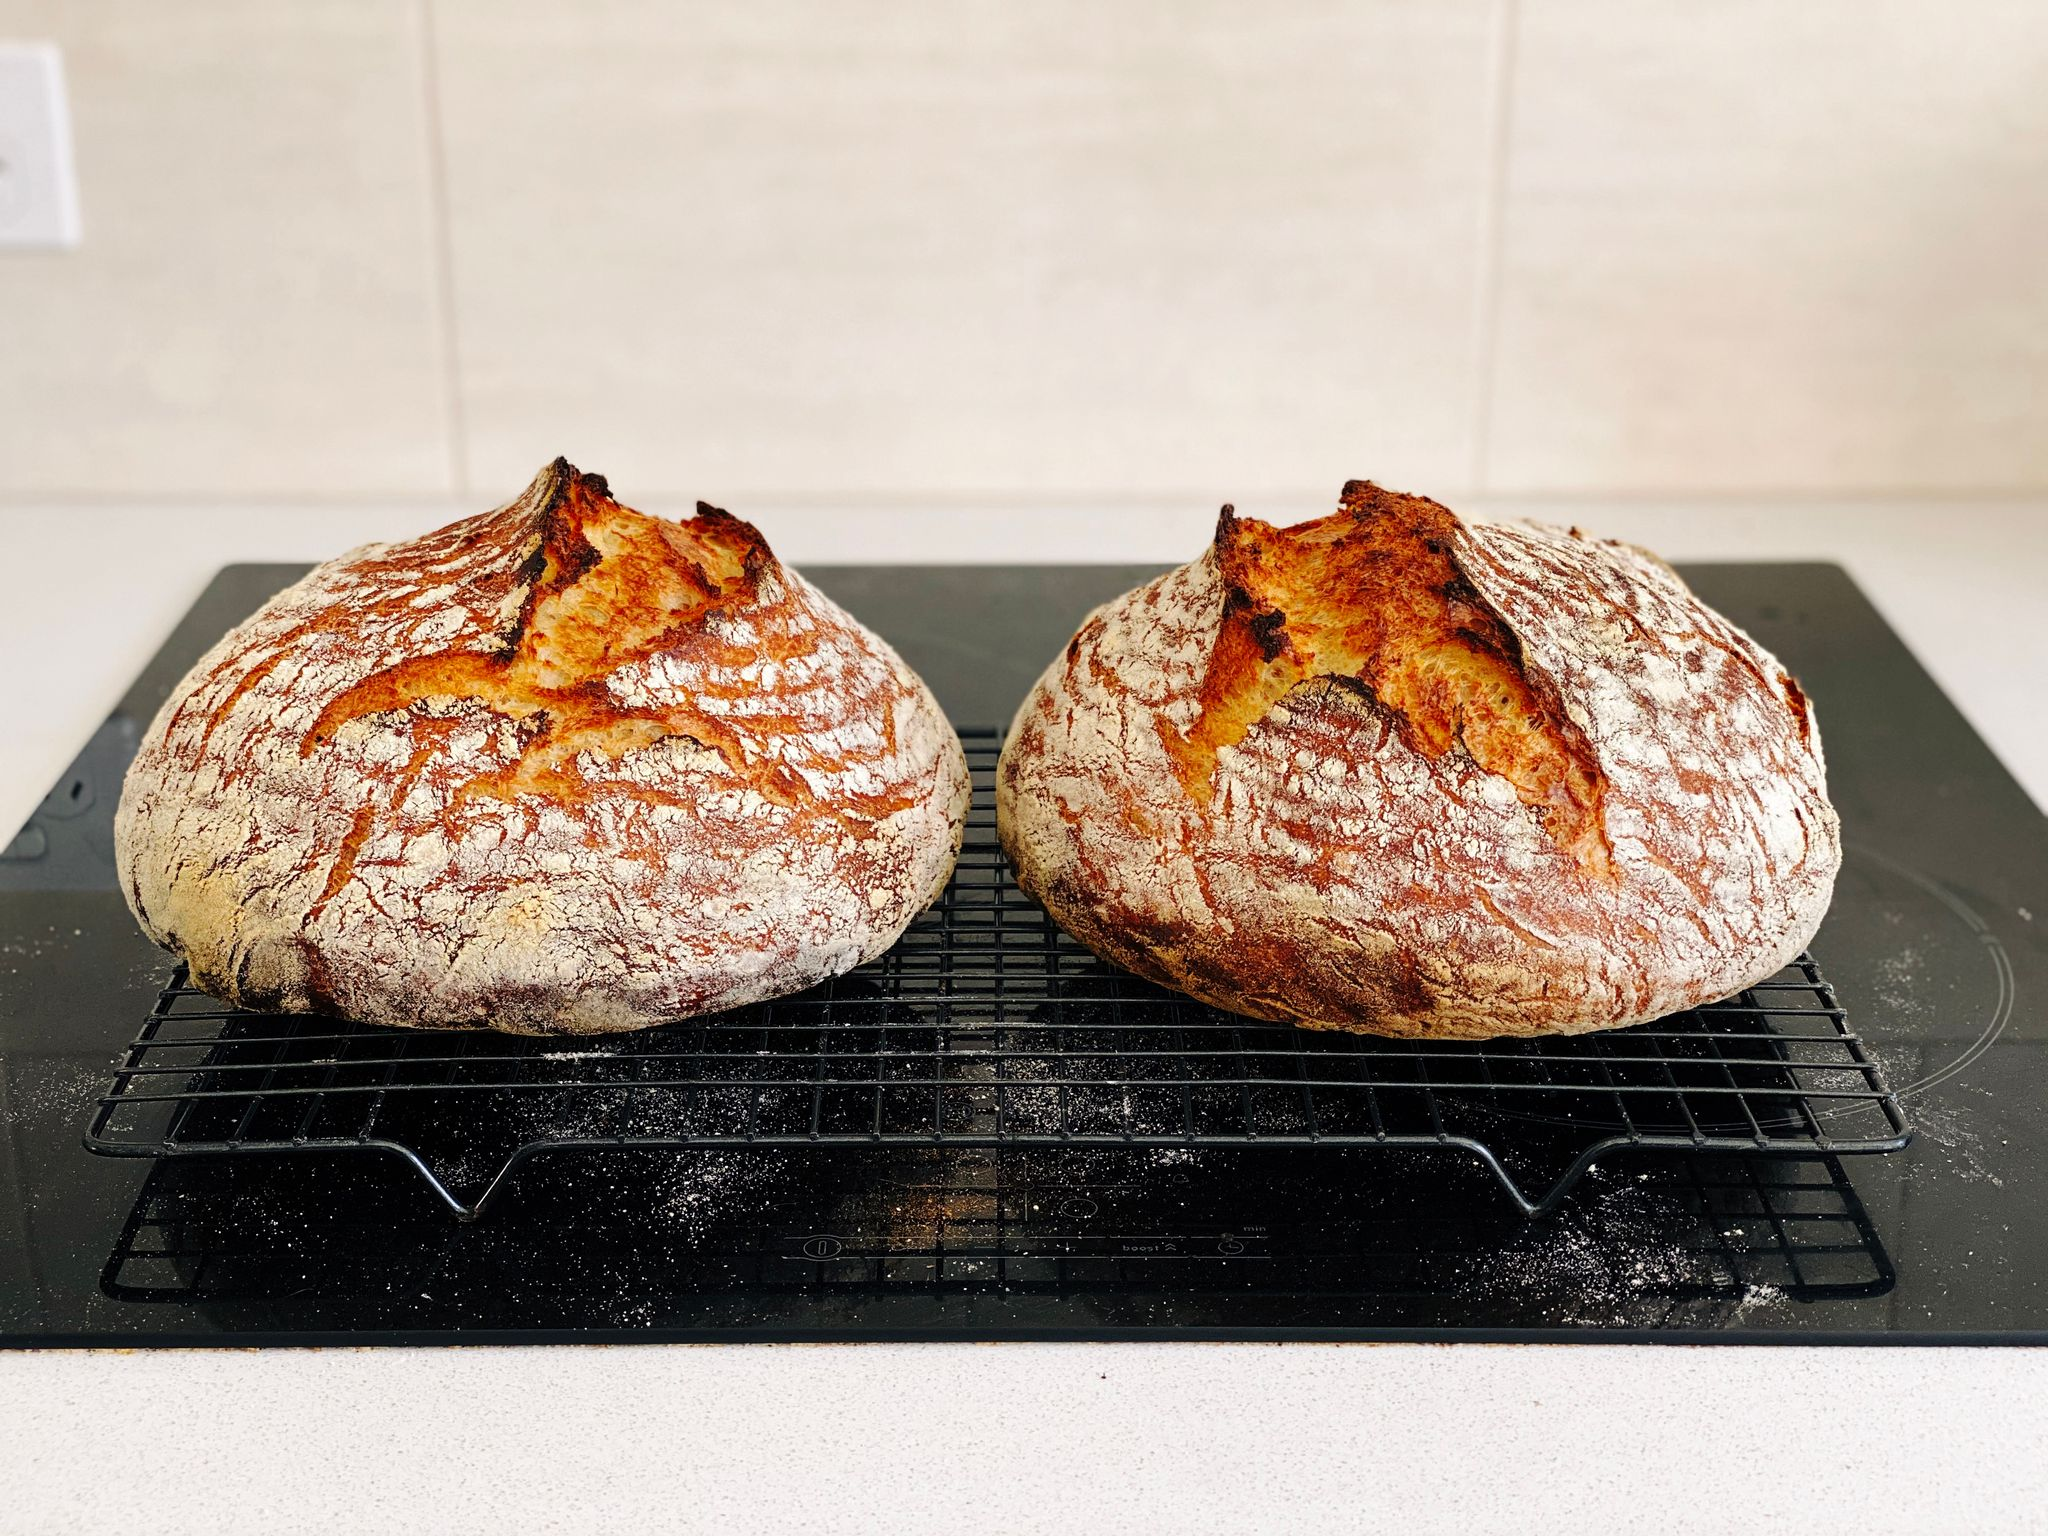 A photo of two golden brown loaves of bread sitting on a cooling rack.